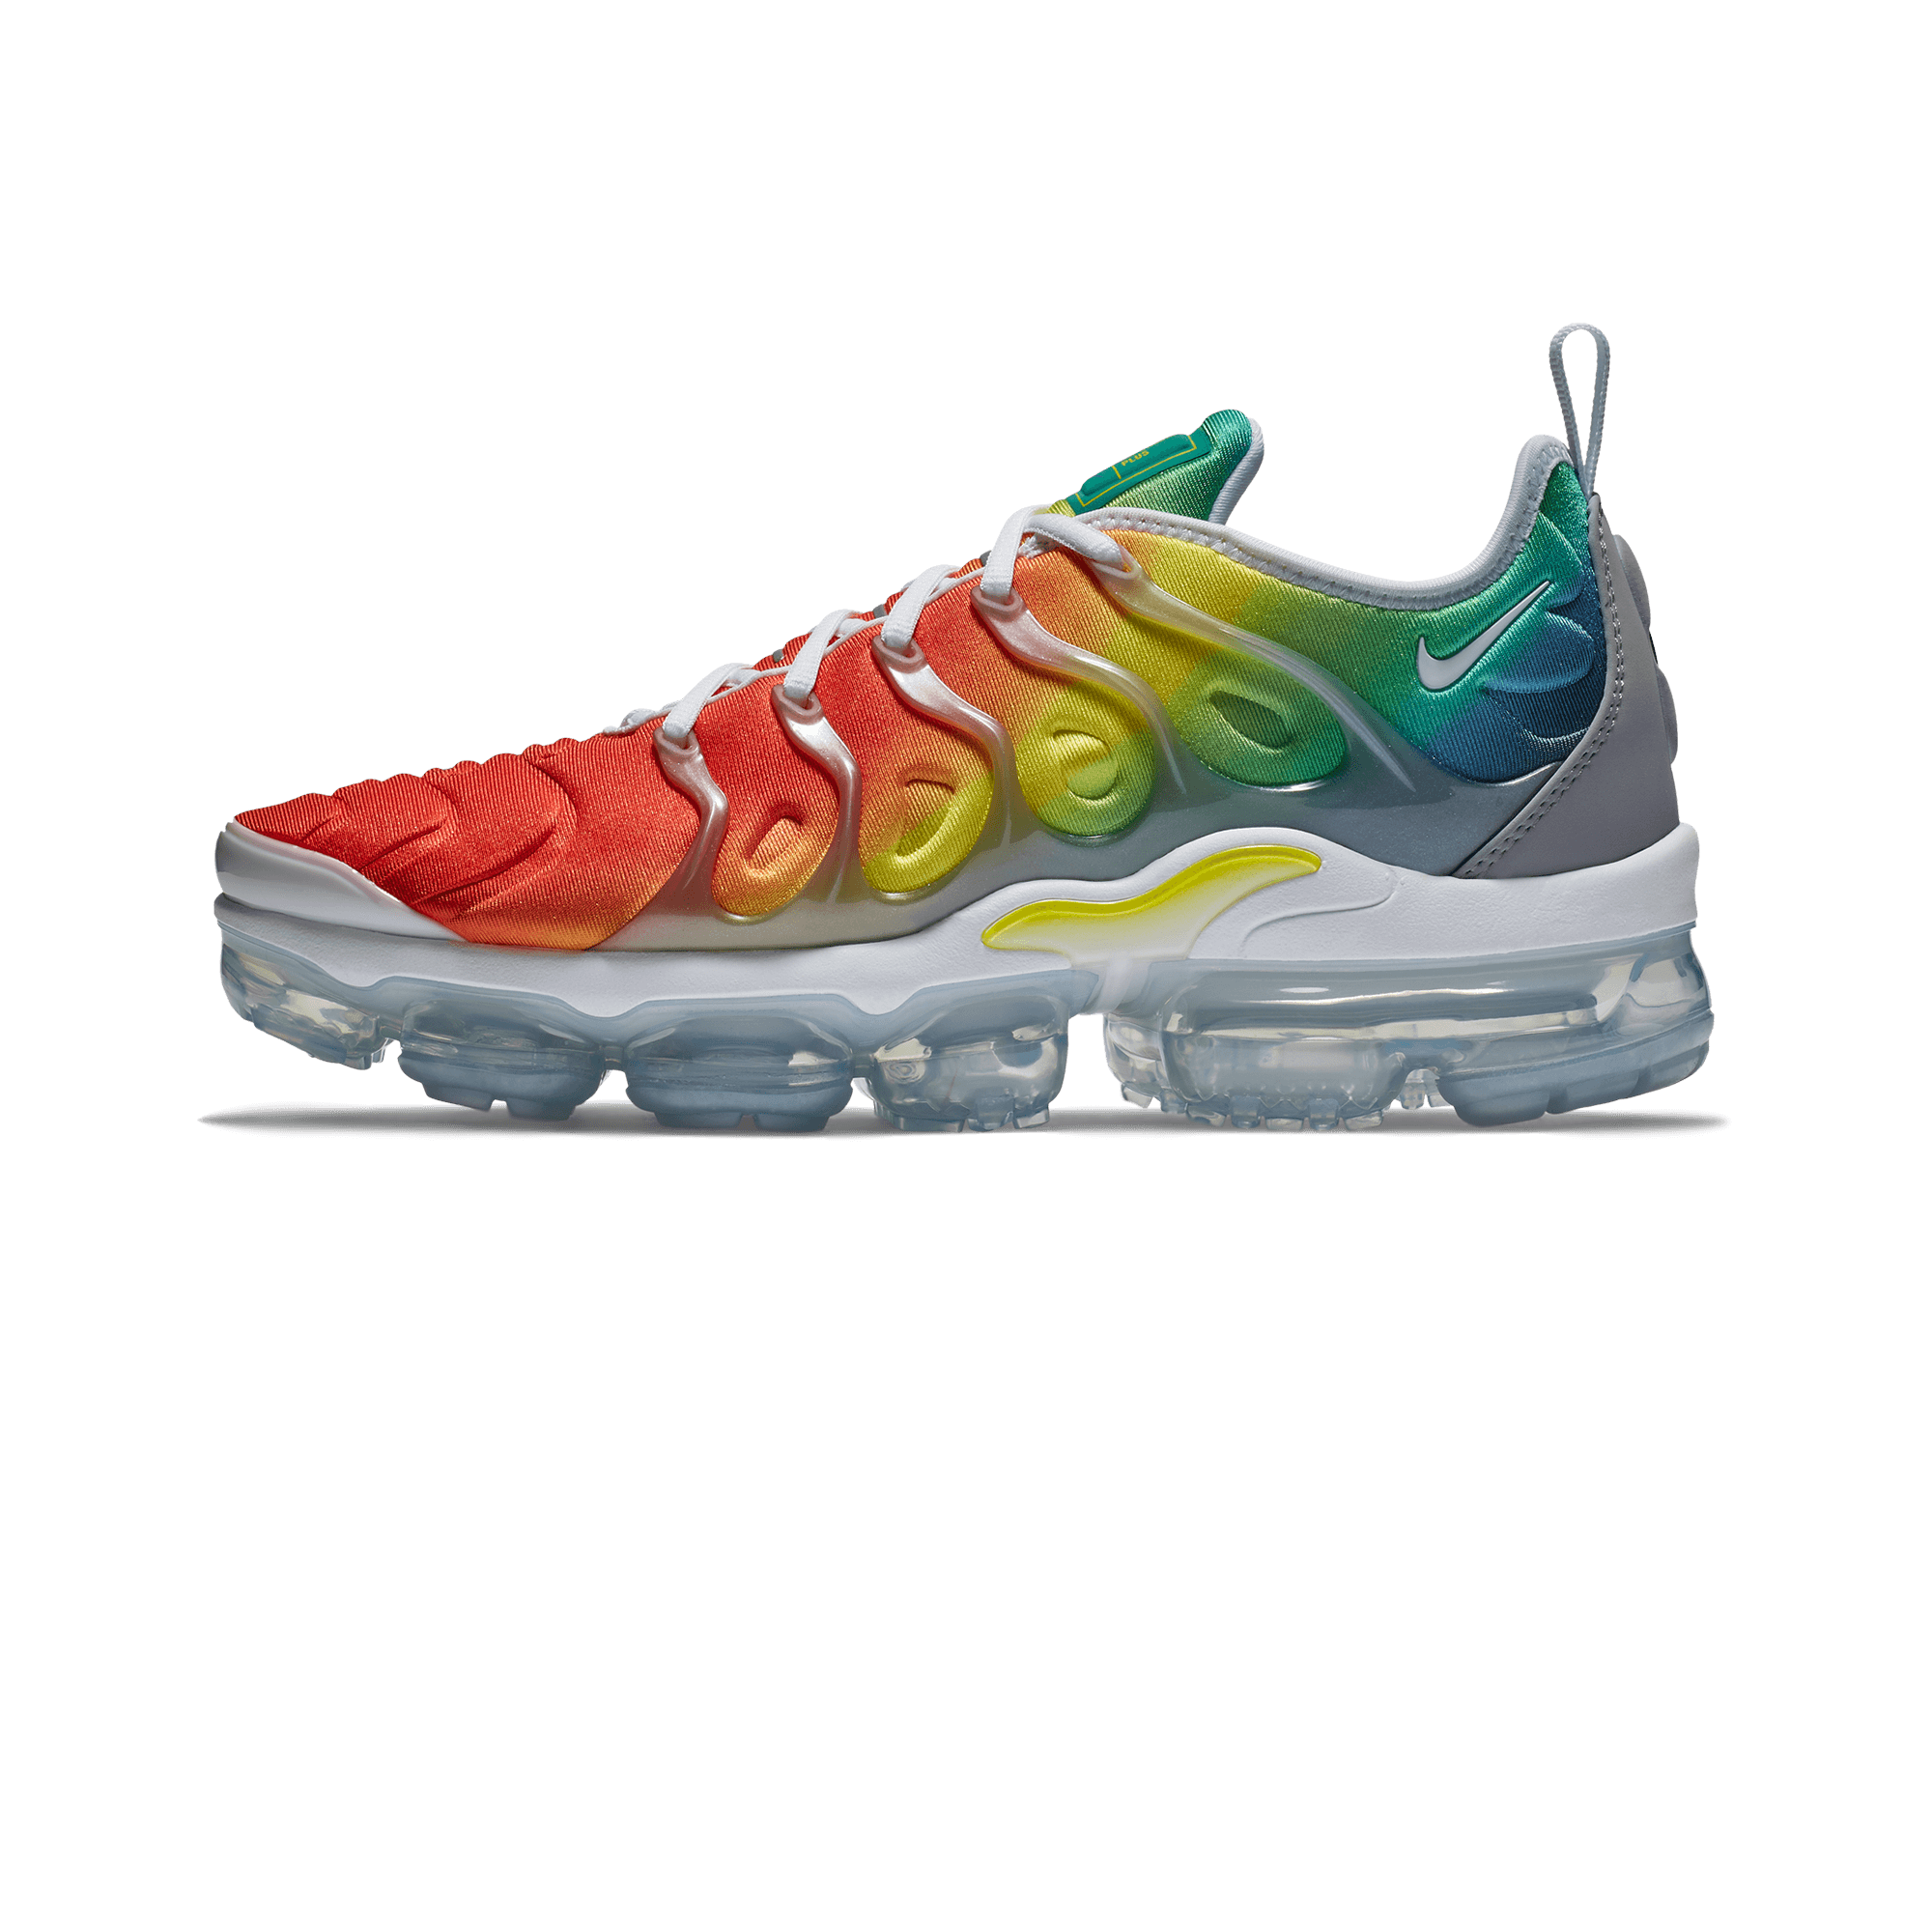 premium selection 2c29c c5669 Nike Air Vapormax Plus white / Neptune green / dynamic yellow - Men |  Holypopstore.com